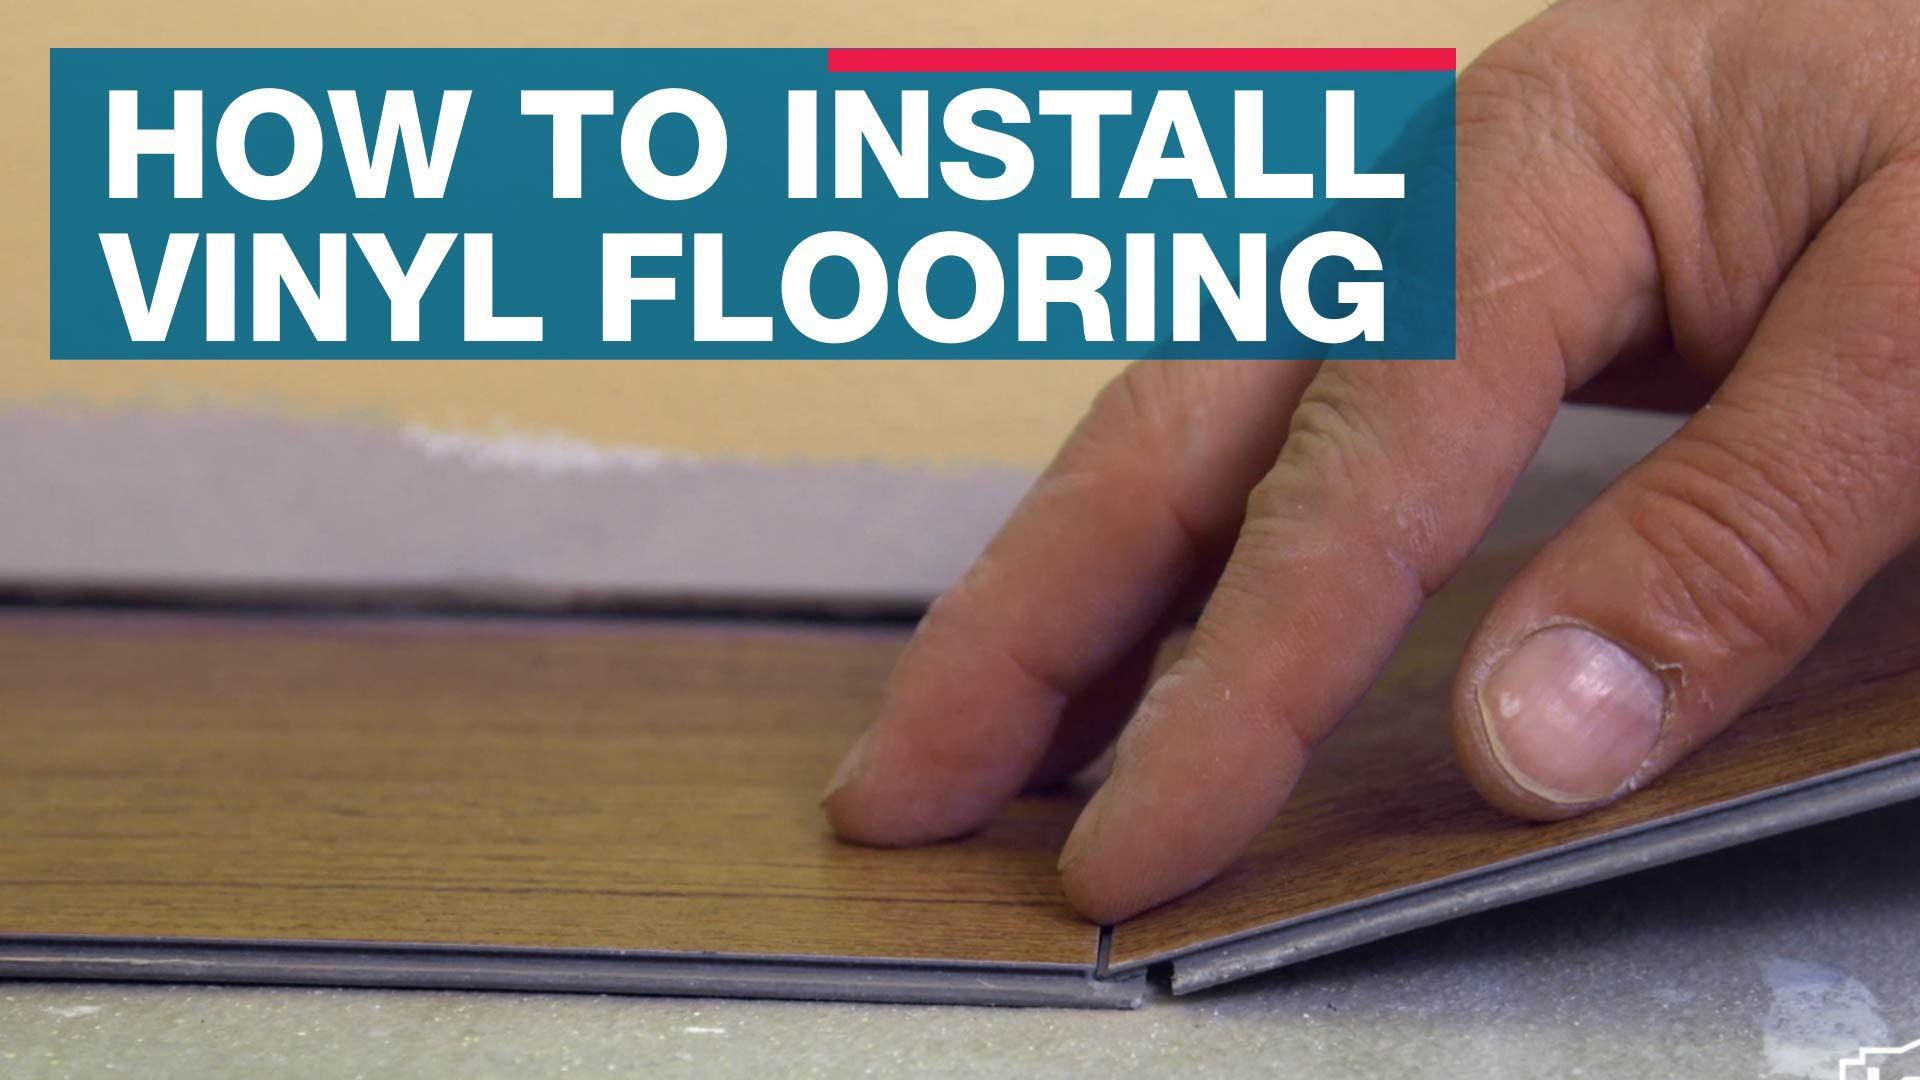 How to Install Vinyl Plank Flooring (With images) Vinyl